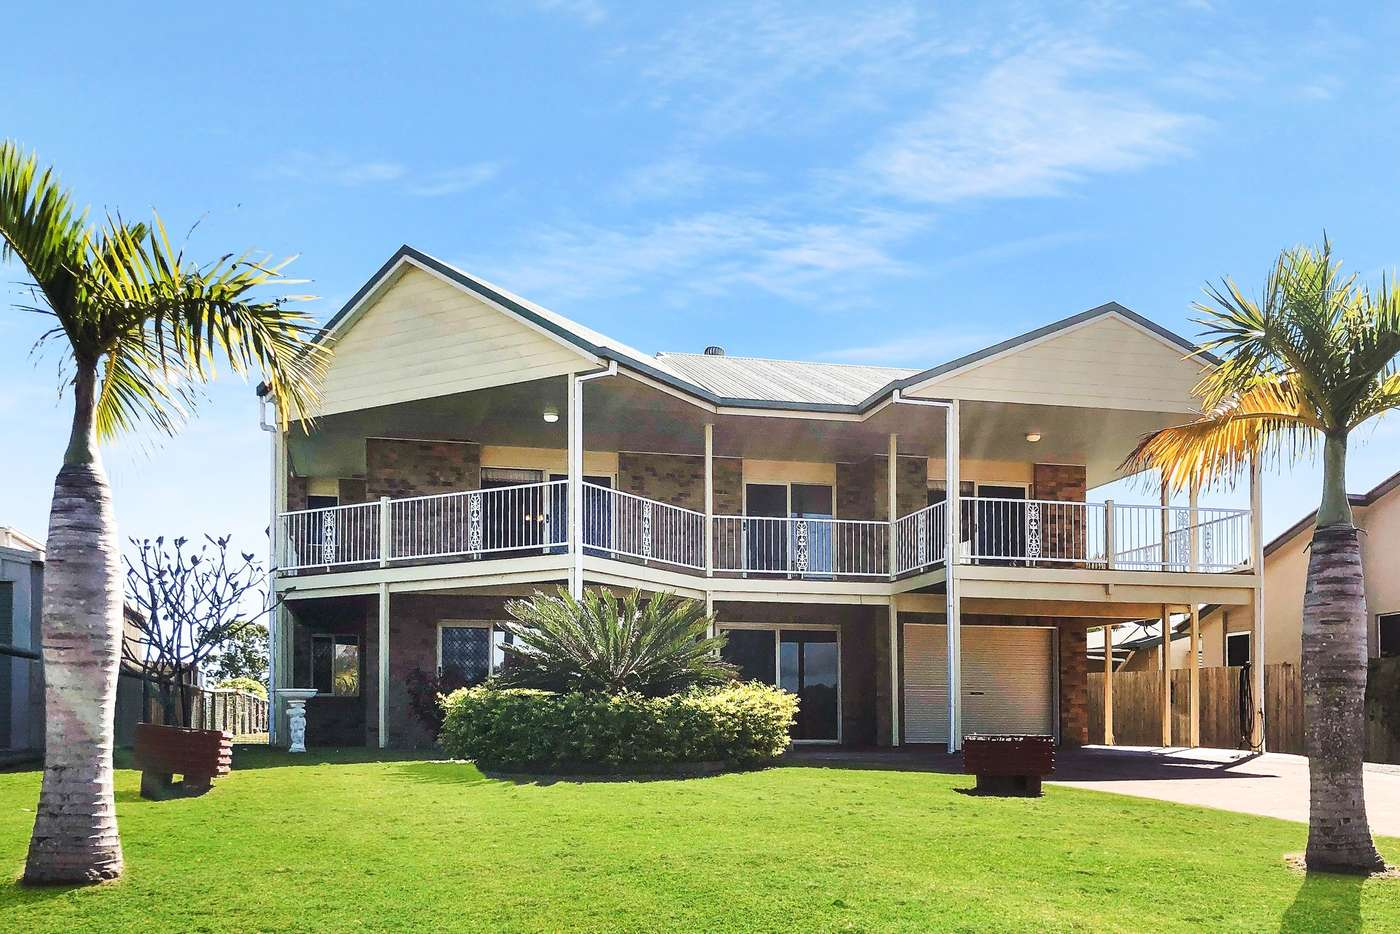 Main view of Homely house listing, 6 Wolfe Street, River Heads QLD 4655